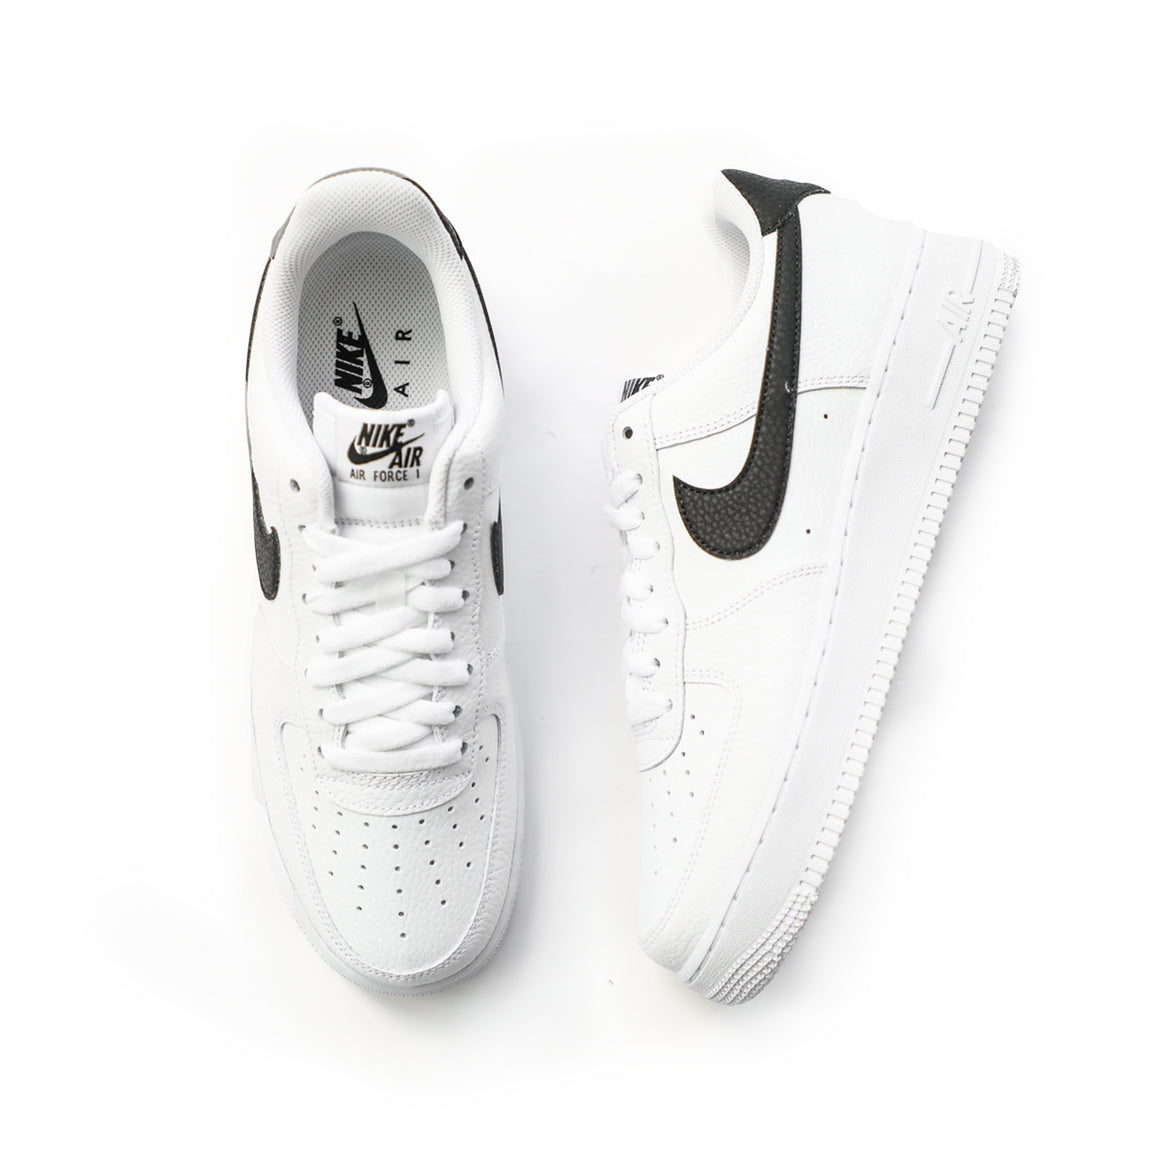 Nike Air Force 1 '07 (White/Black) - Nike Air Force 1 '07 (White/Black) -